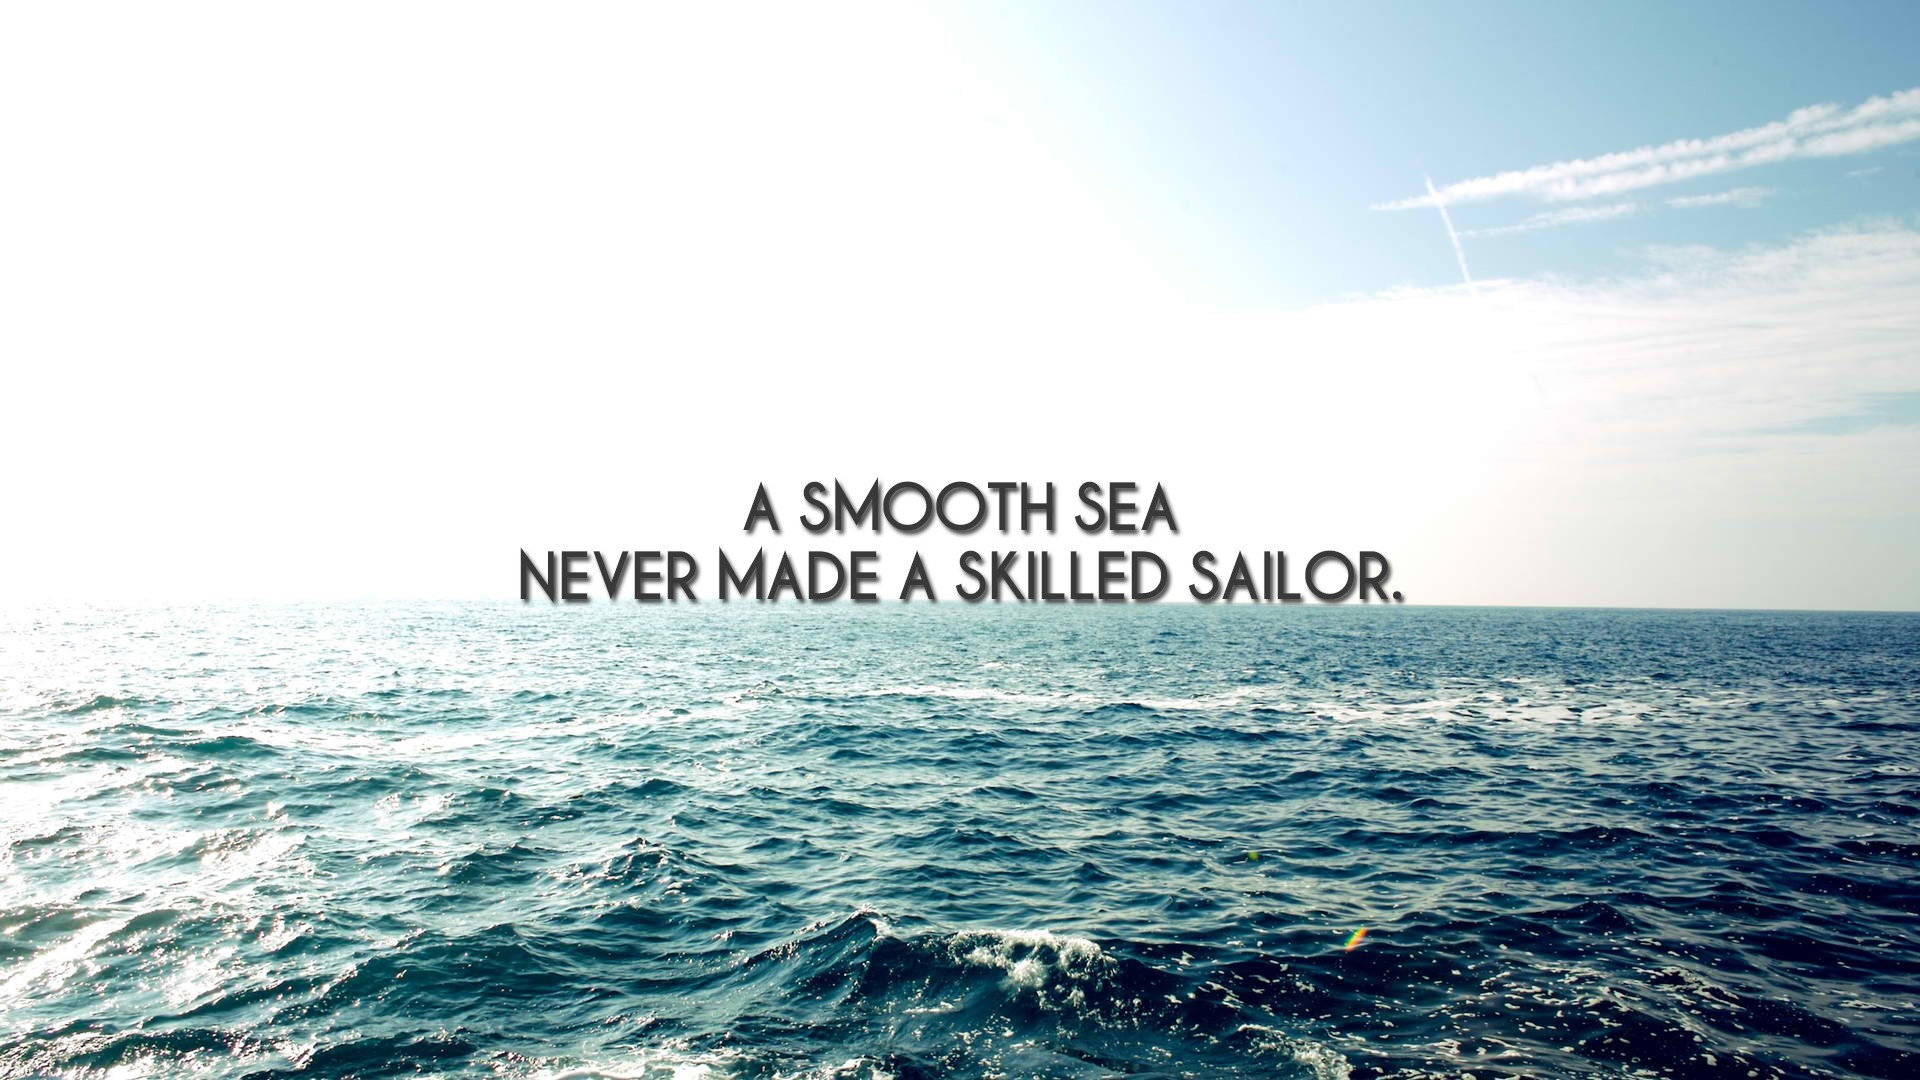 1920x1080 Sailor at sea inspirational quote HD Wallpaper, Desktop Background .